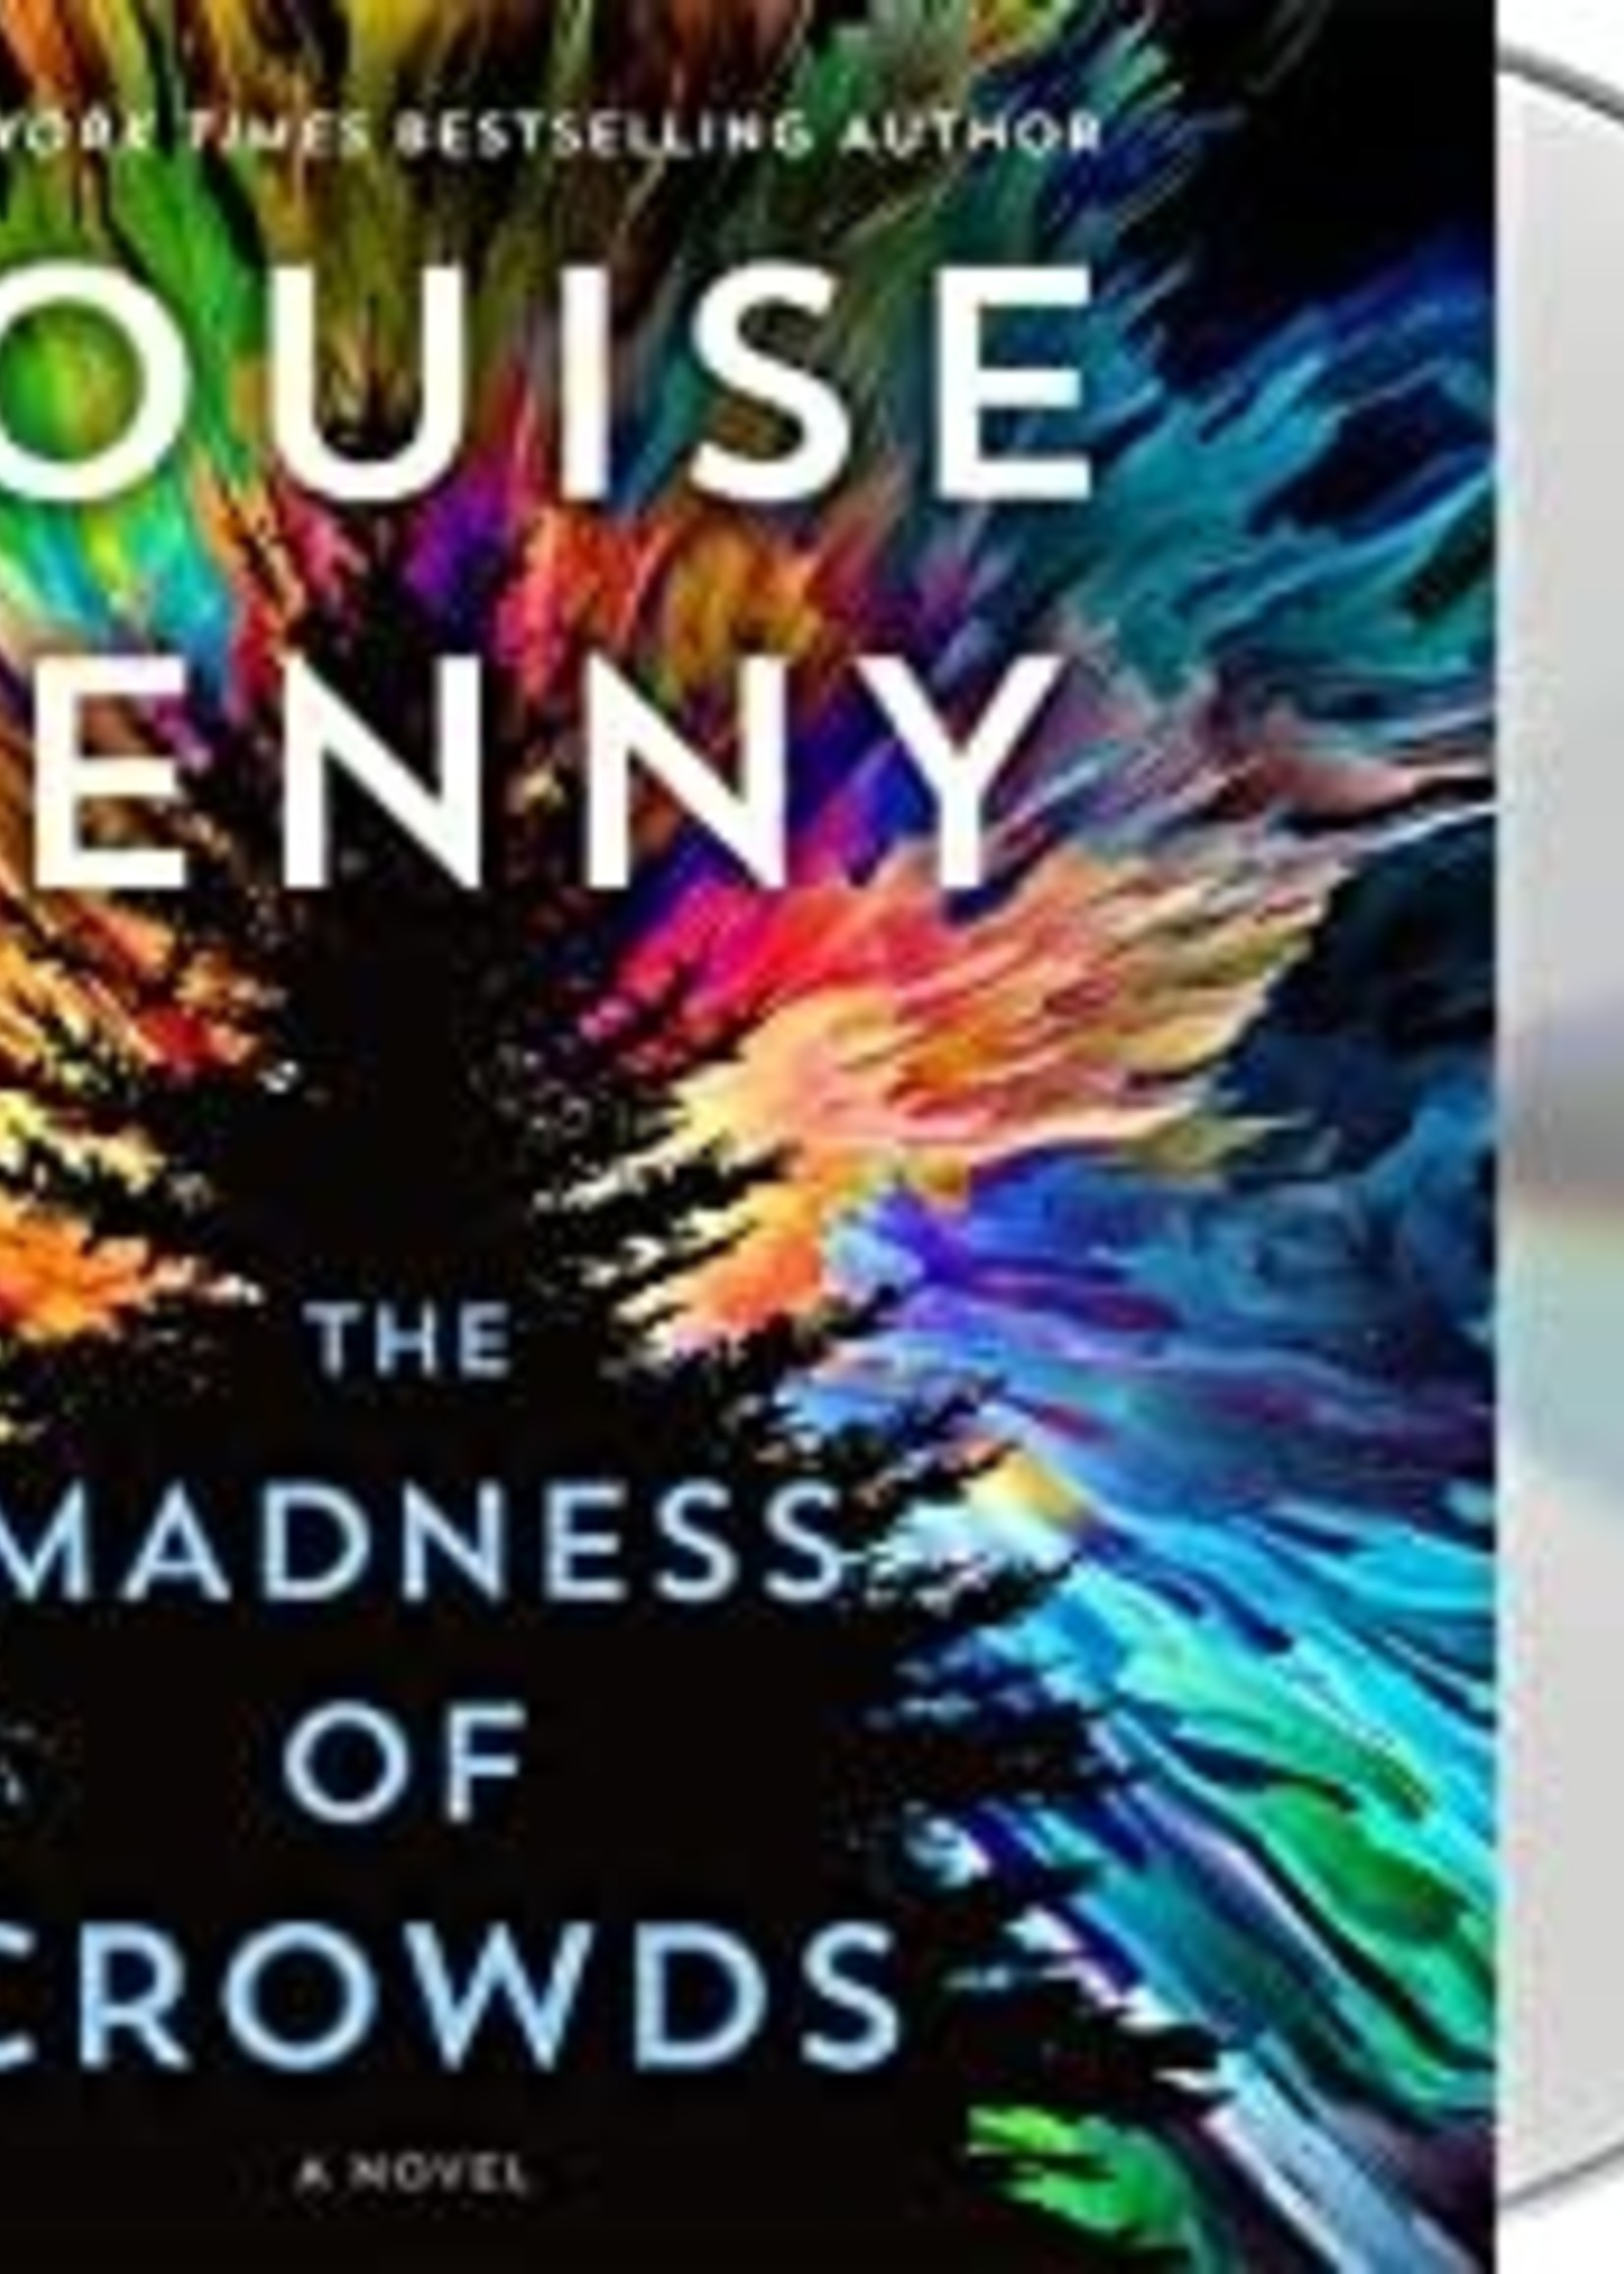 The Madness of Crowds (Chief Inspector Armand Gamache #17) by Louise Penny (Audio Book)